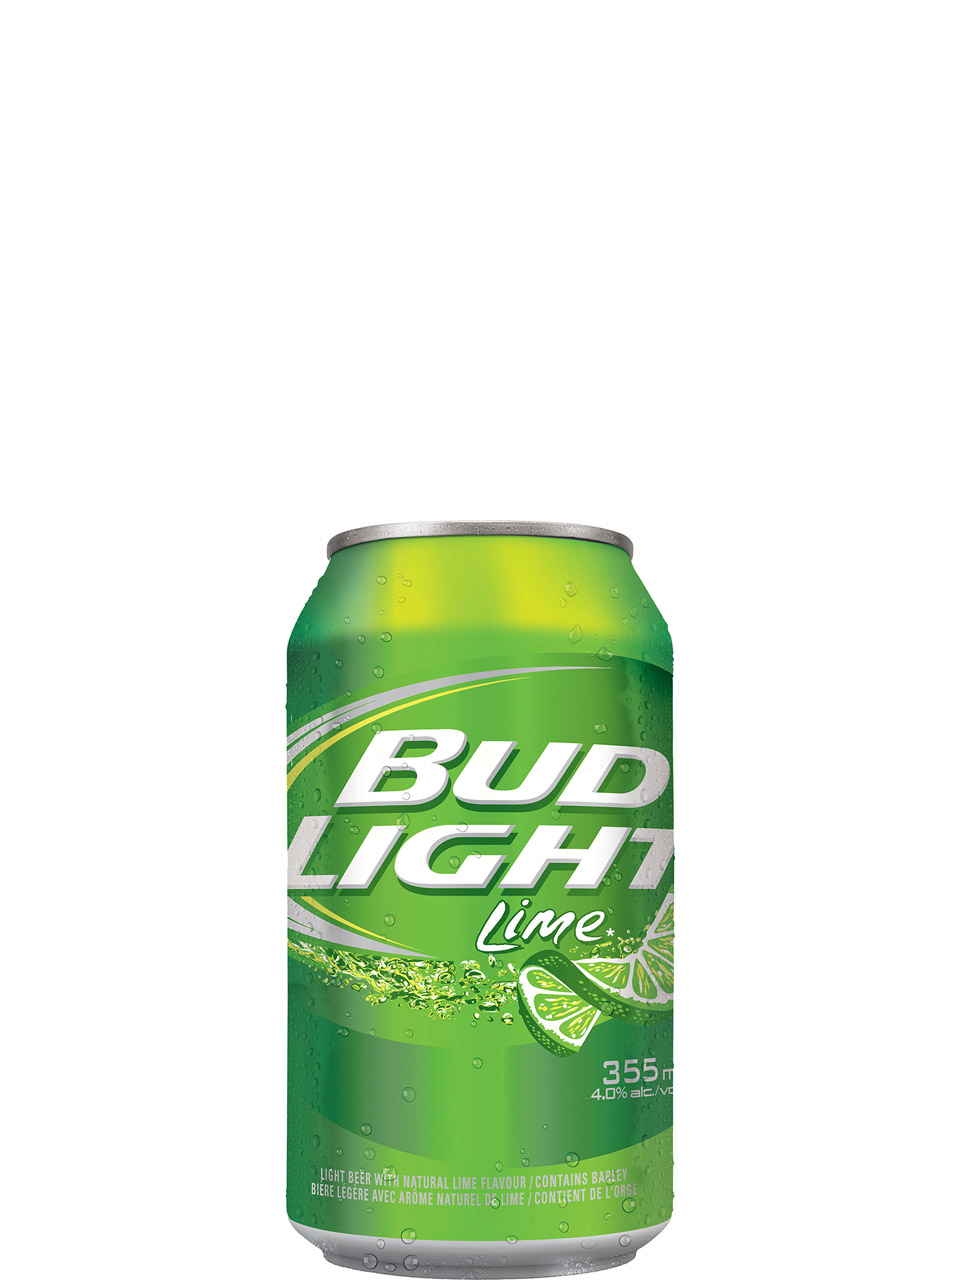 Bud Light Lime 12pk Cans